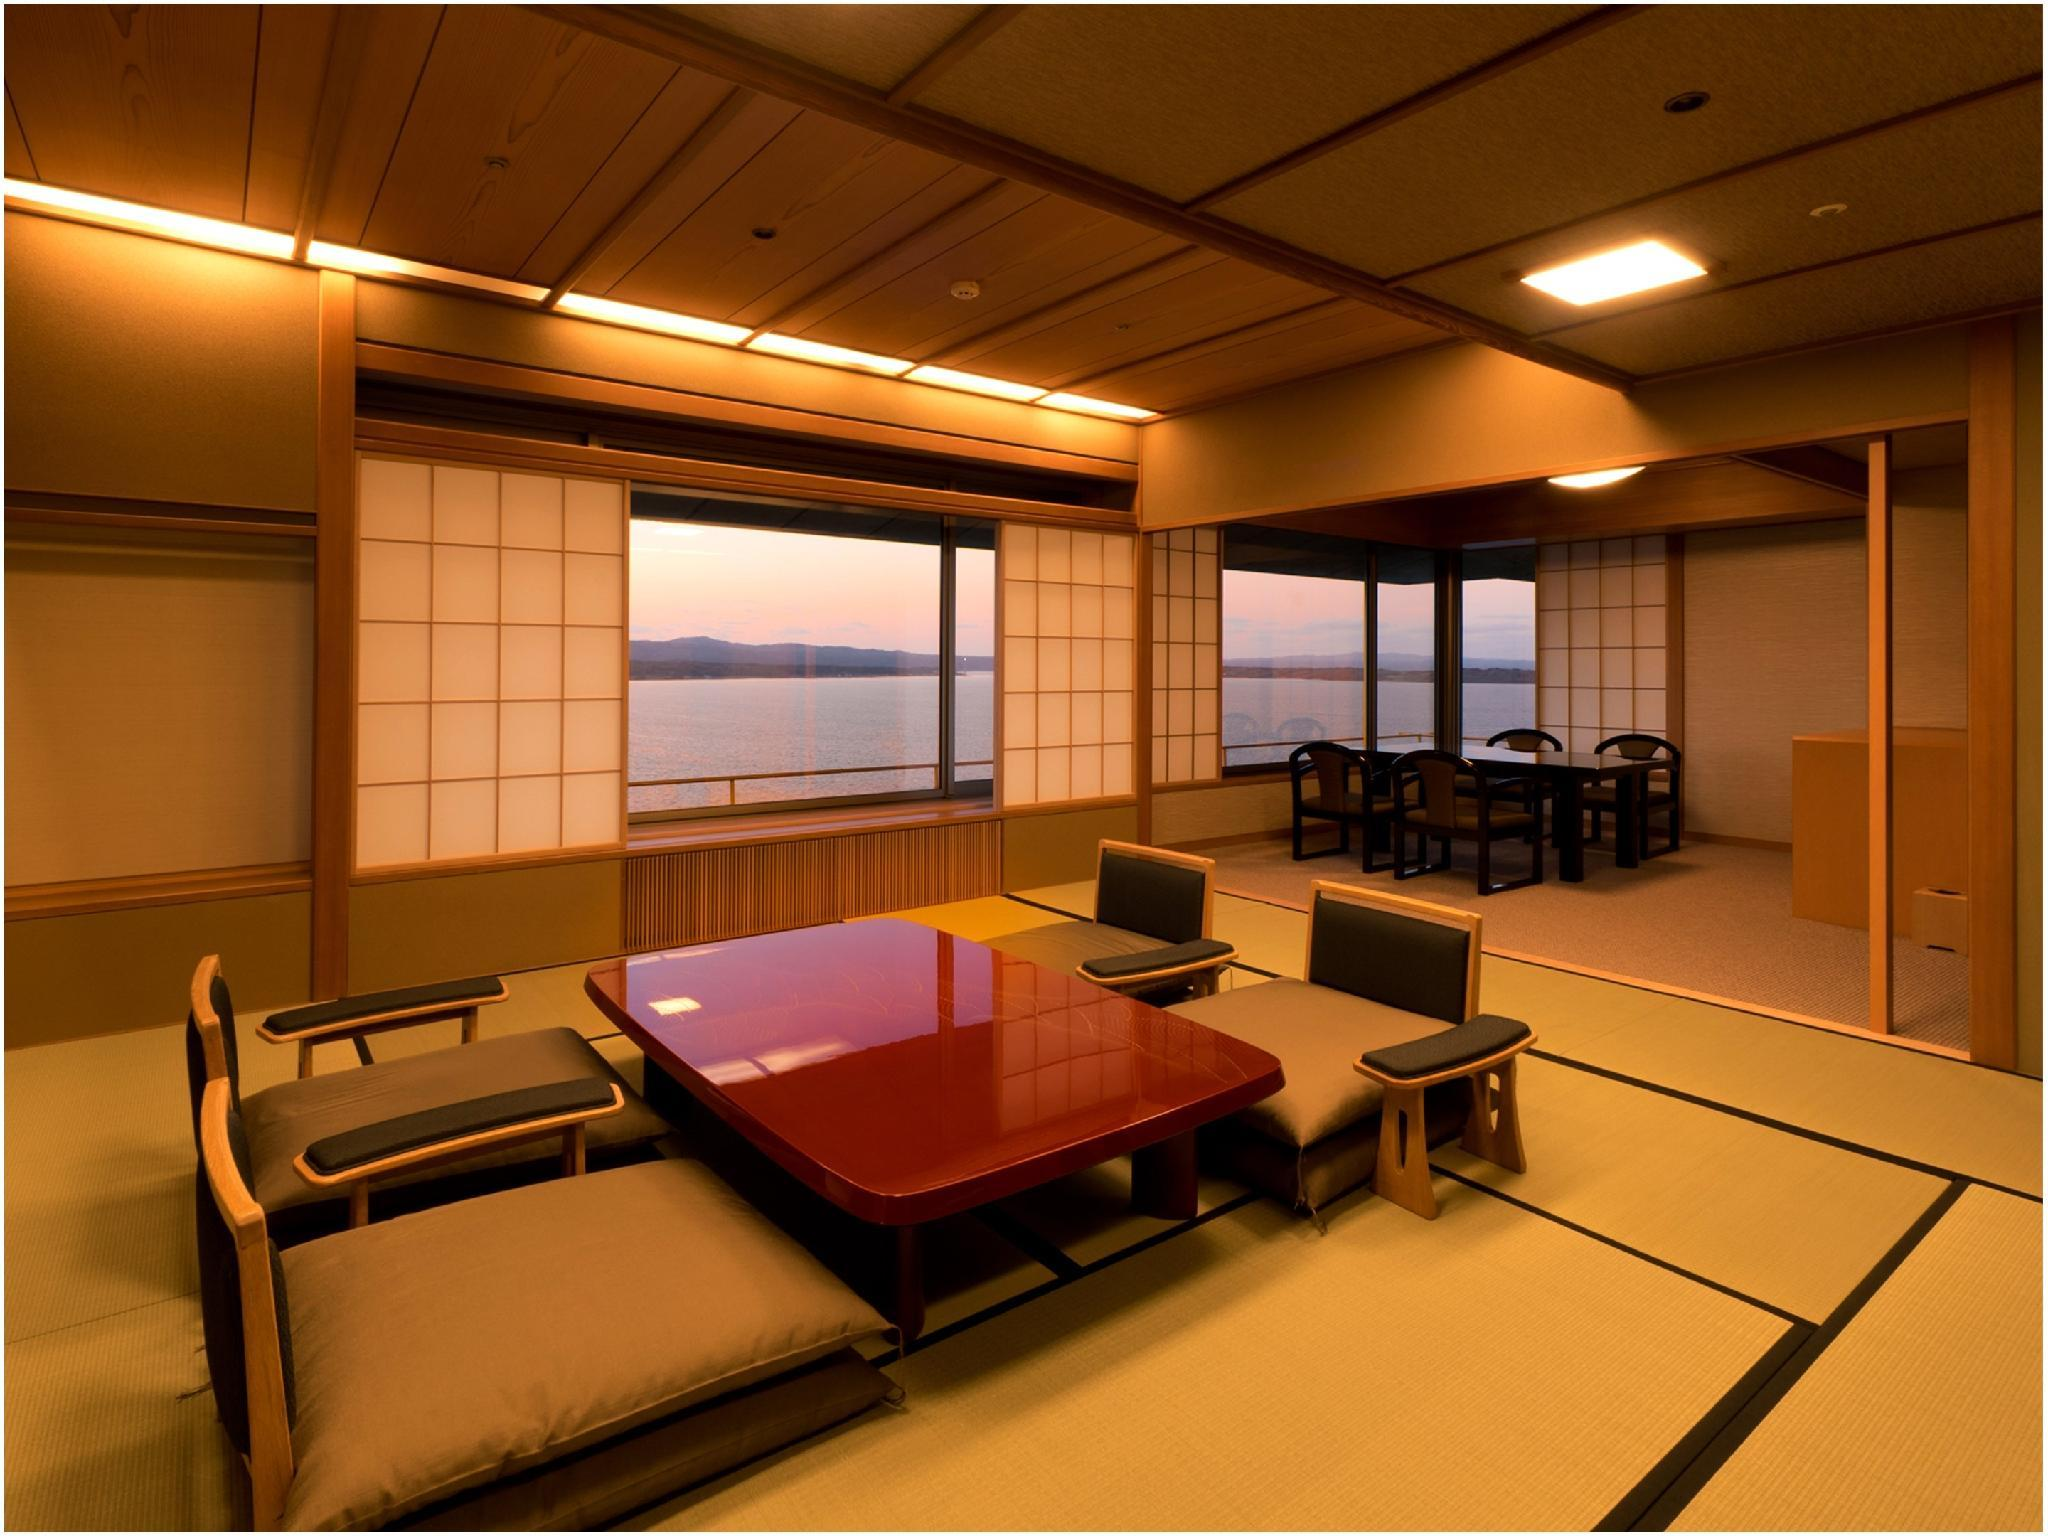 雪月花 特選樓層 海景禁菸豪華和式房(2張單人床) (Deluxe Japanese-style Room (Twin Beds, Setsugetsuka Tokusenkai) *Ocean side view, No smoking)